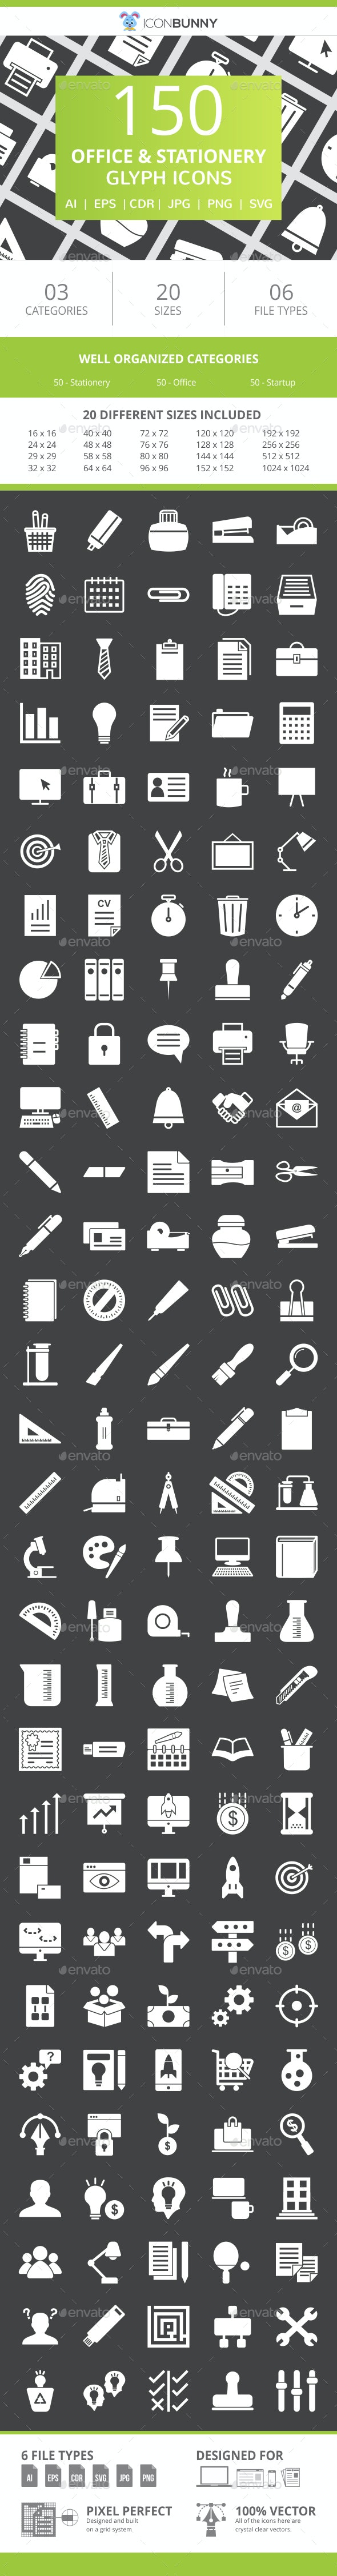 150 Office & Stationery Glyph Inverted Icons - Icons